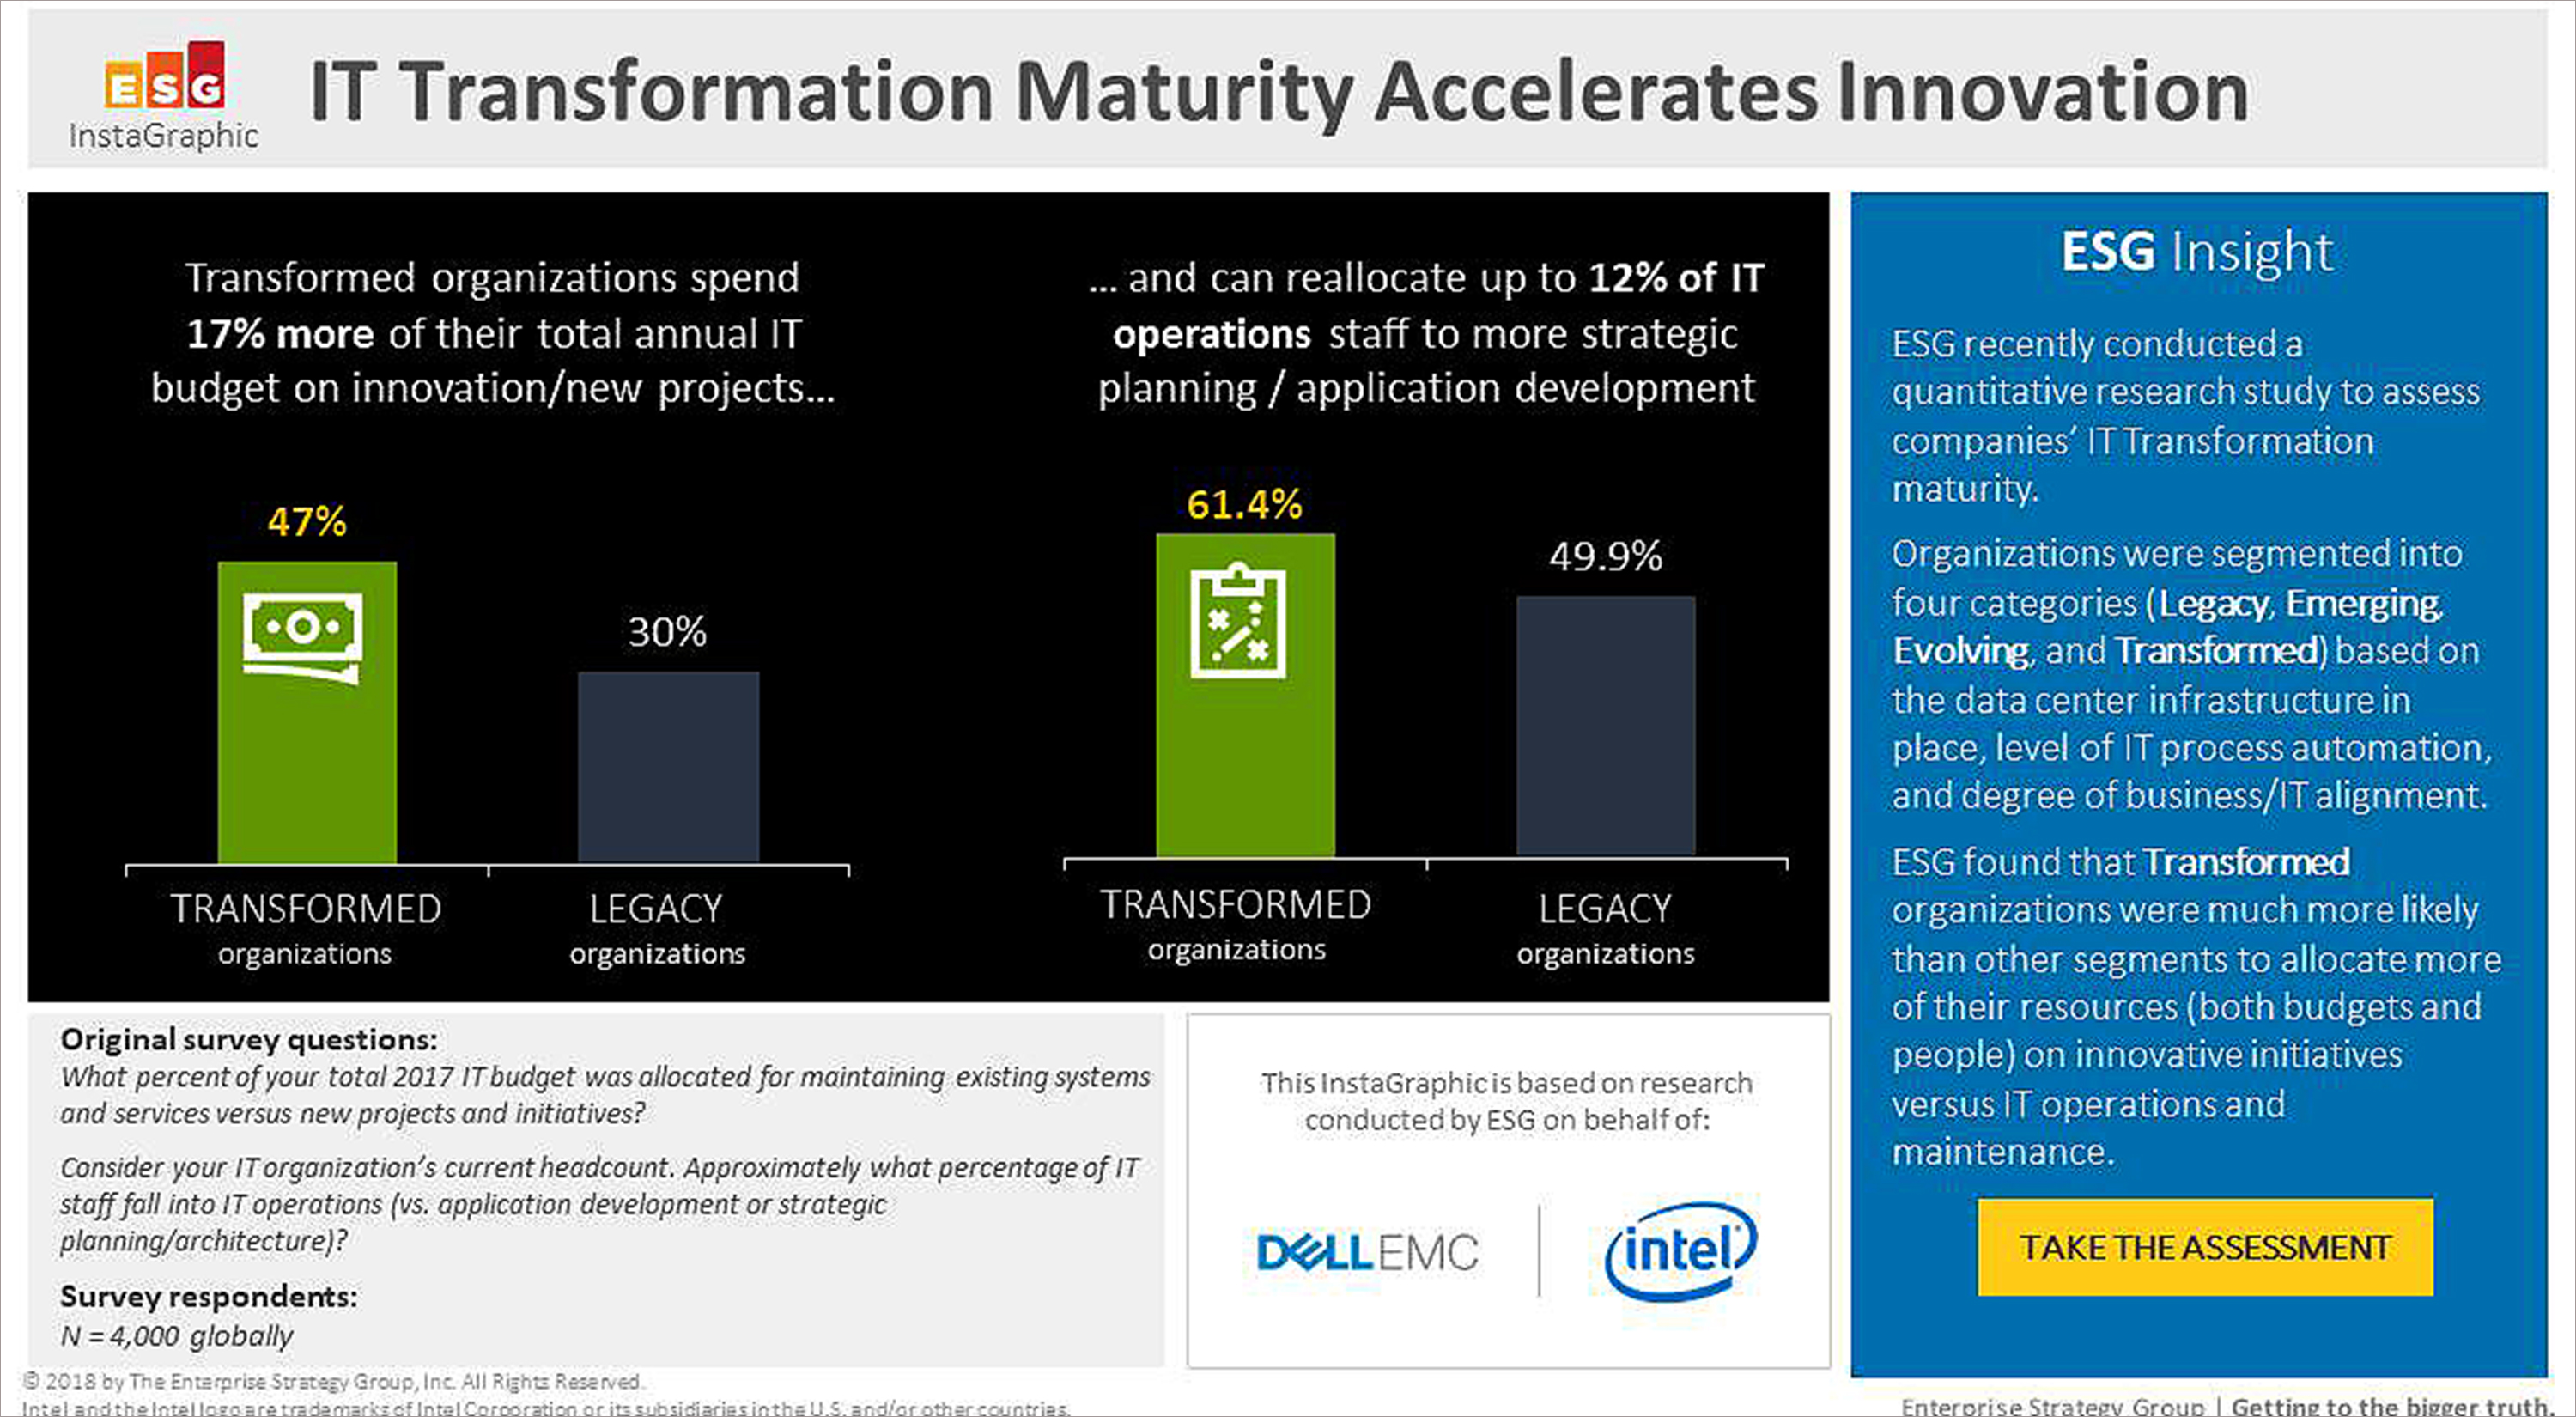 IT transformed biz reallocate 17% more IT budget towards innovation, Dell EMC